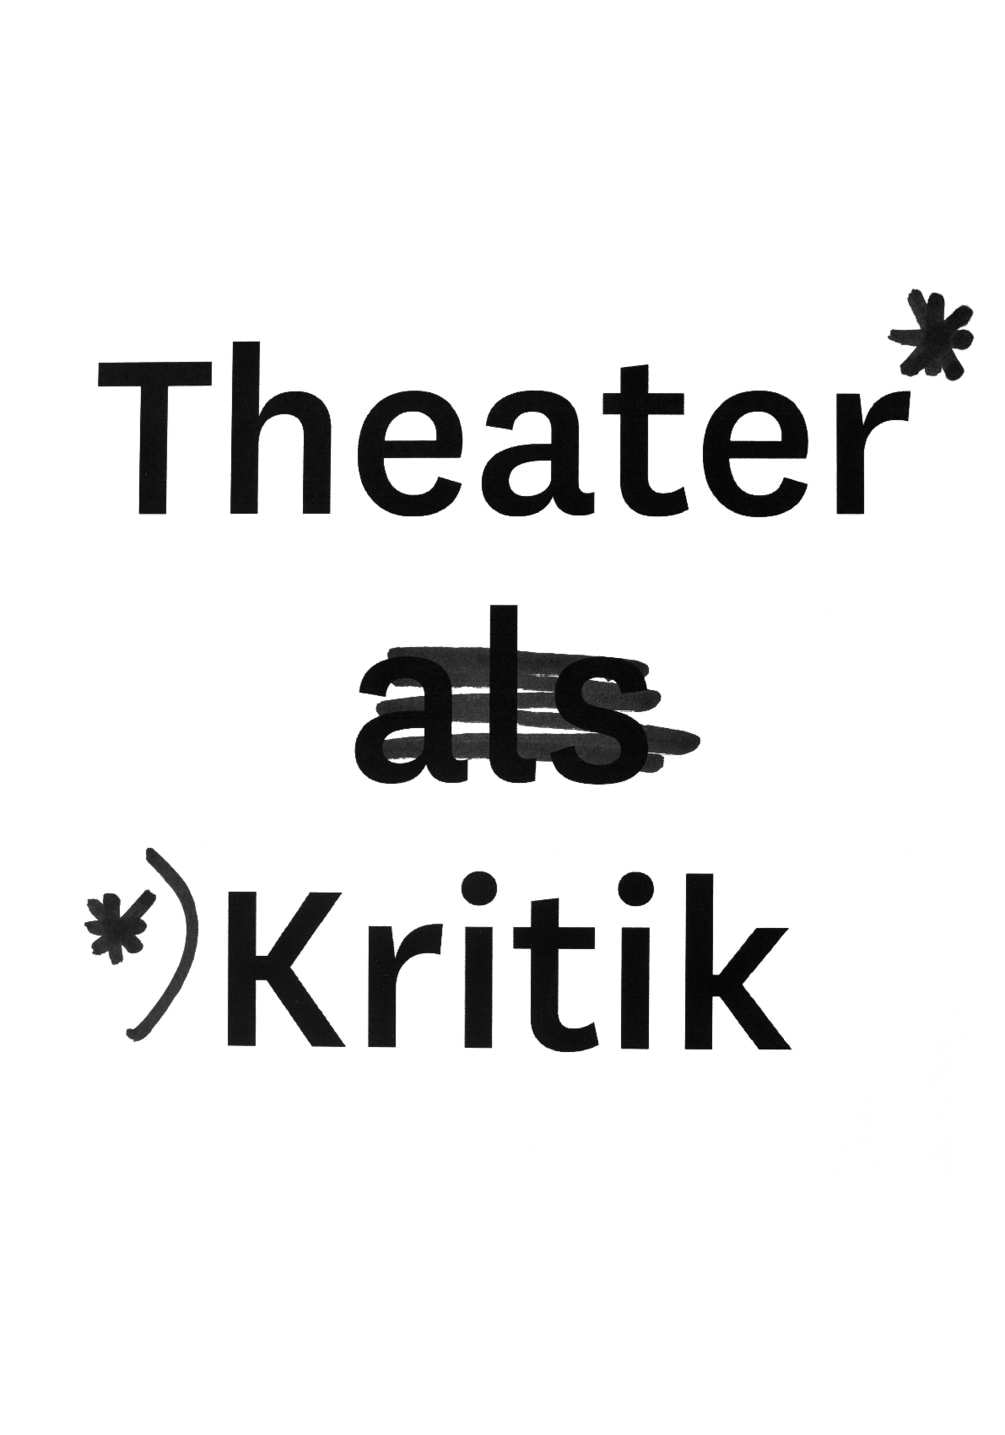 theater-as-critique-slip-02-1005x1435px